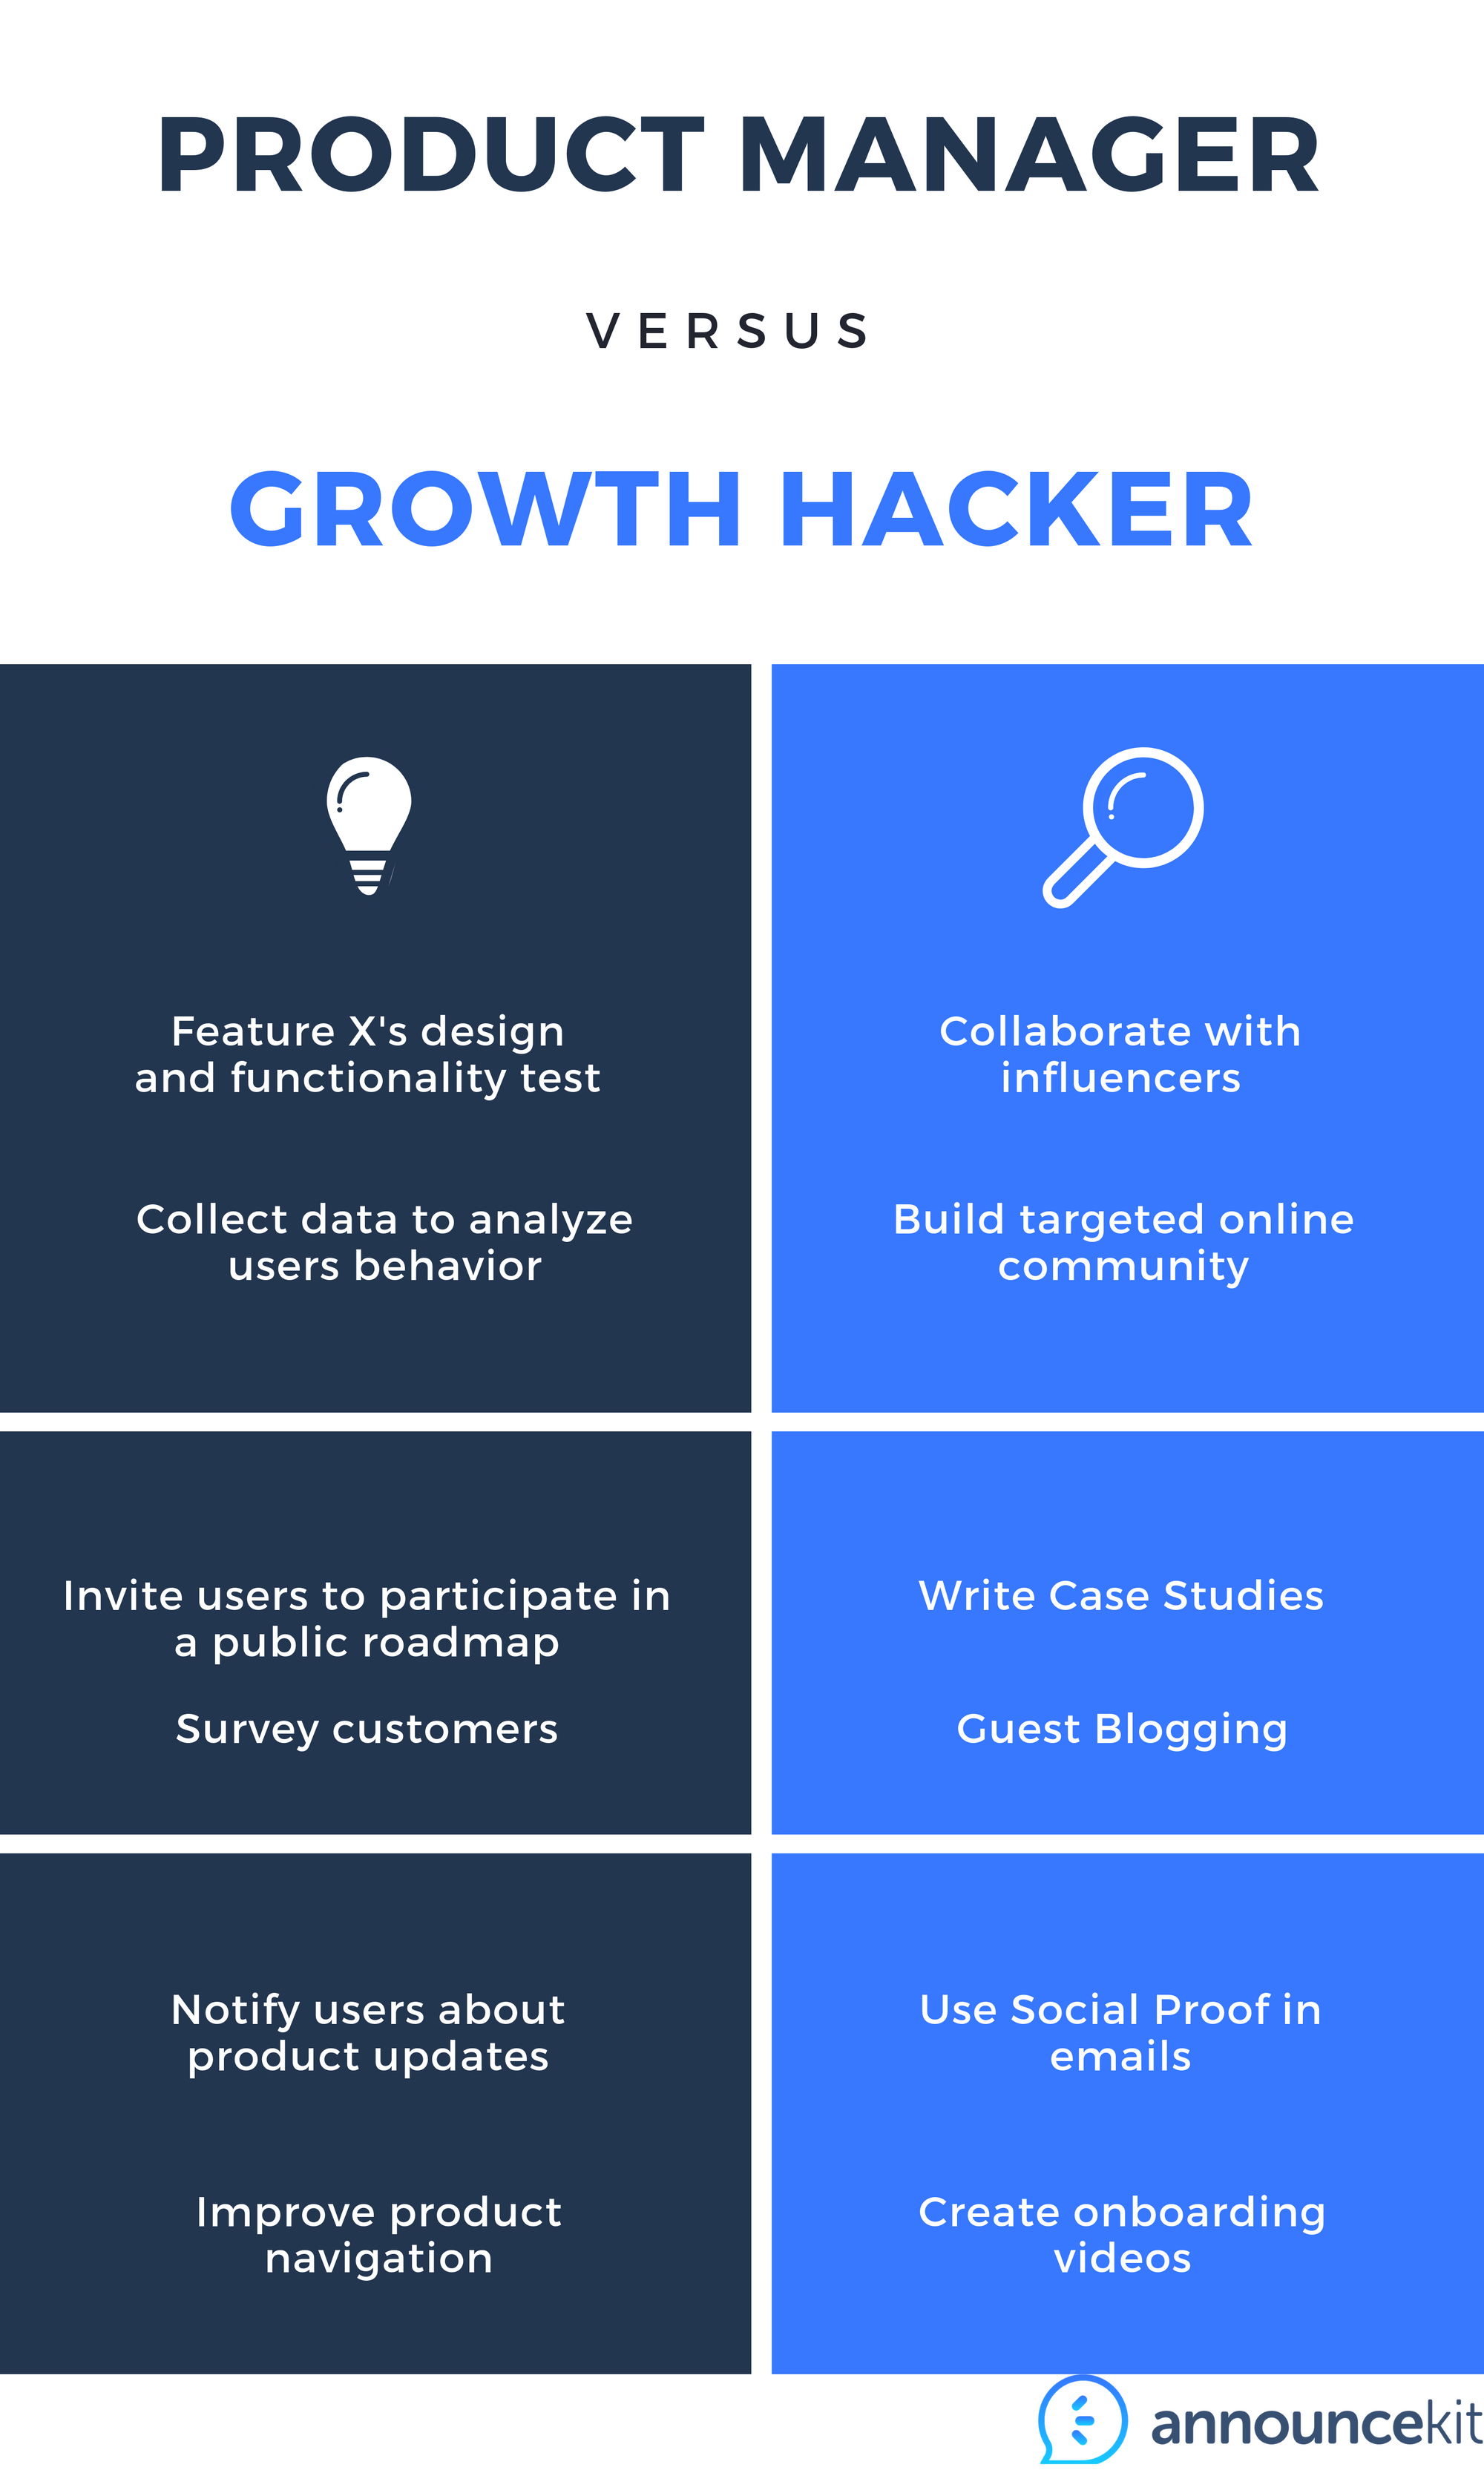 product-manager-vs-growth-hacker